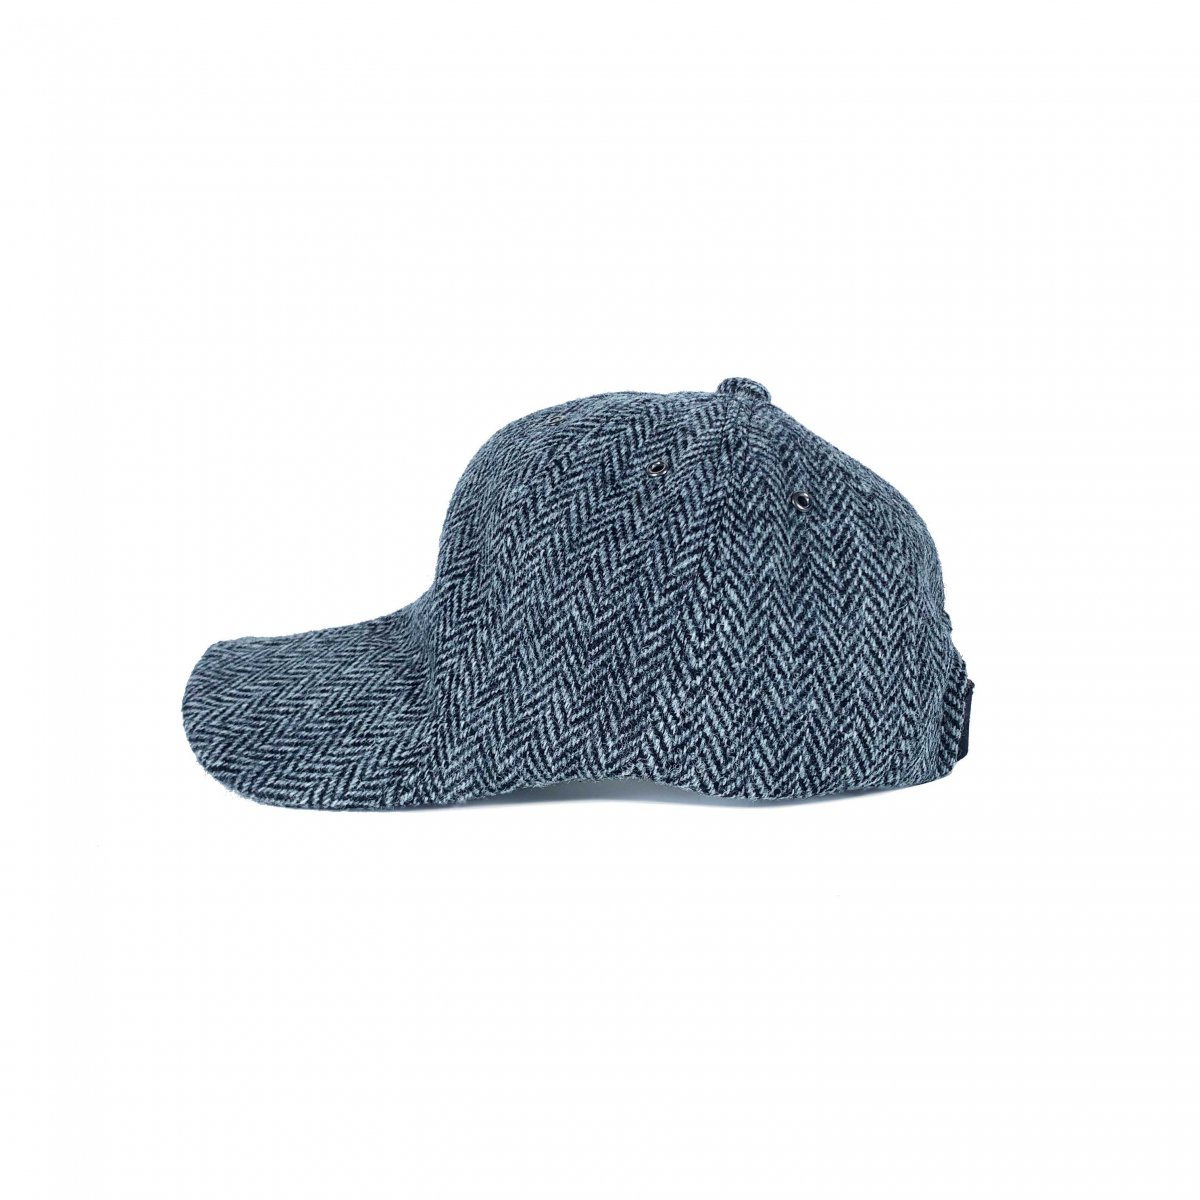 HICOSAKA(ヒコサカ) HARRIS TWEED 8PANEL DRAPING CAP 詳細画像1